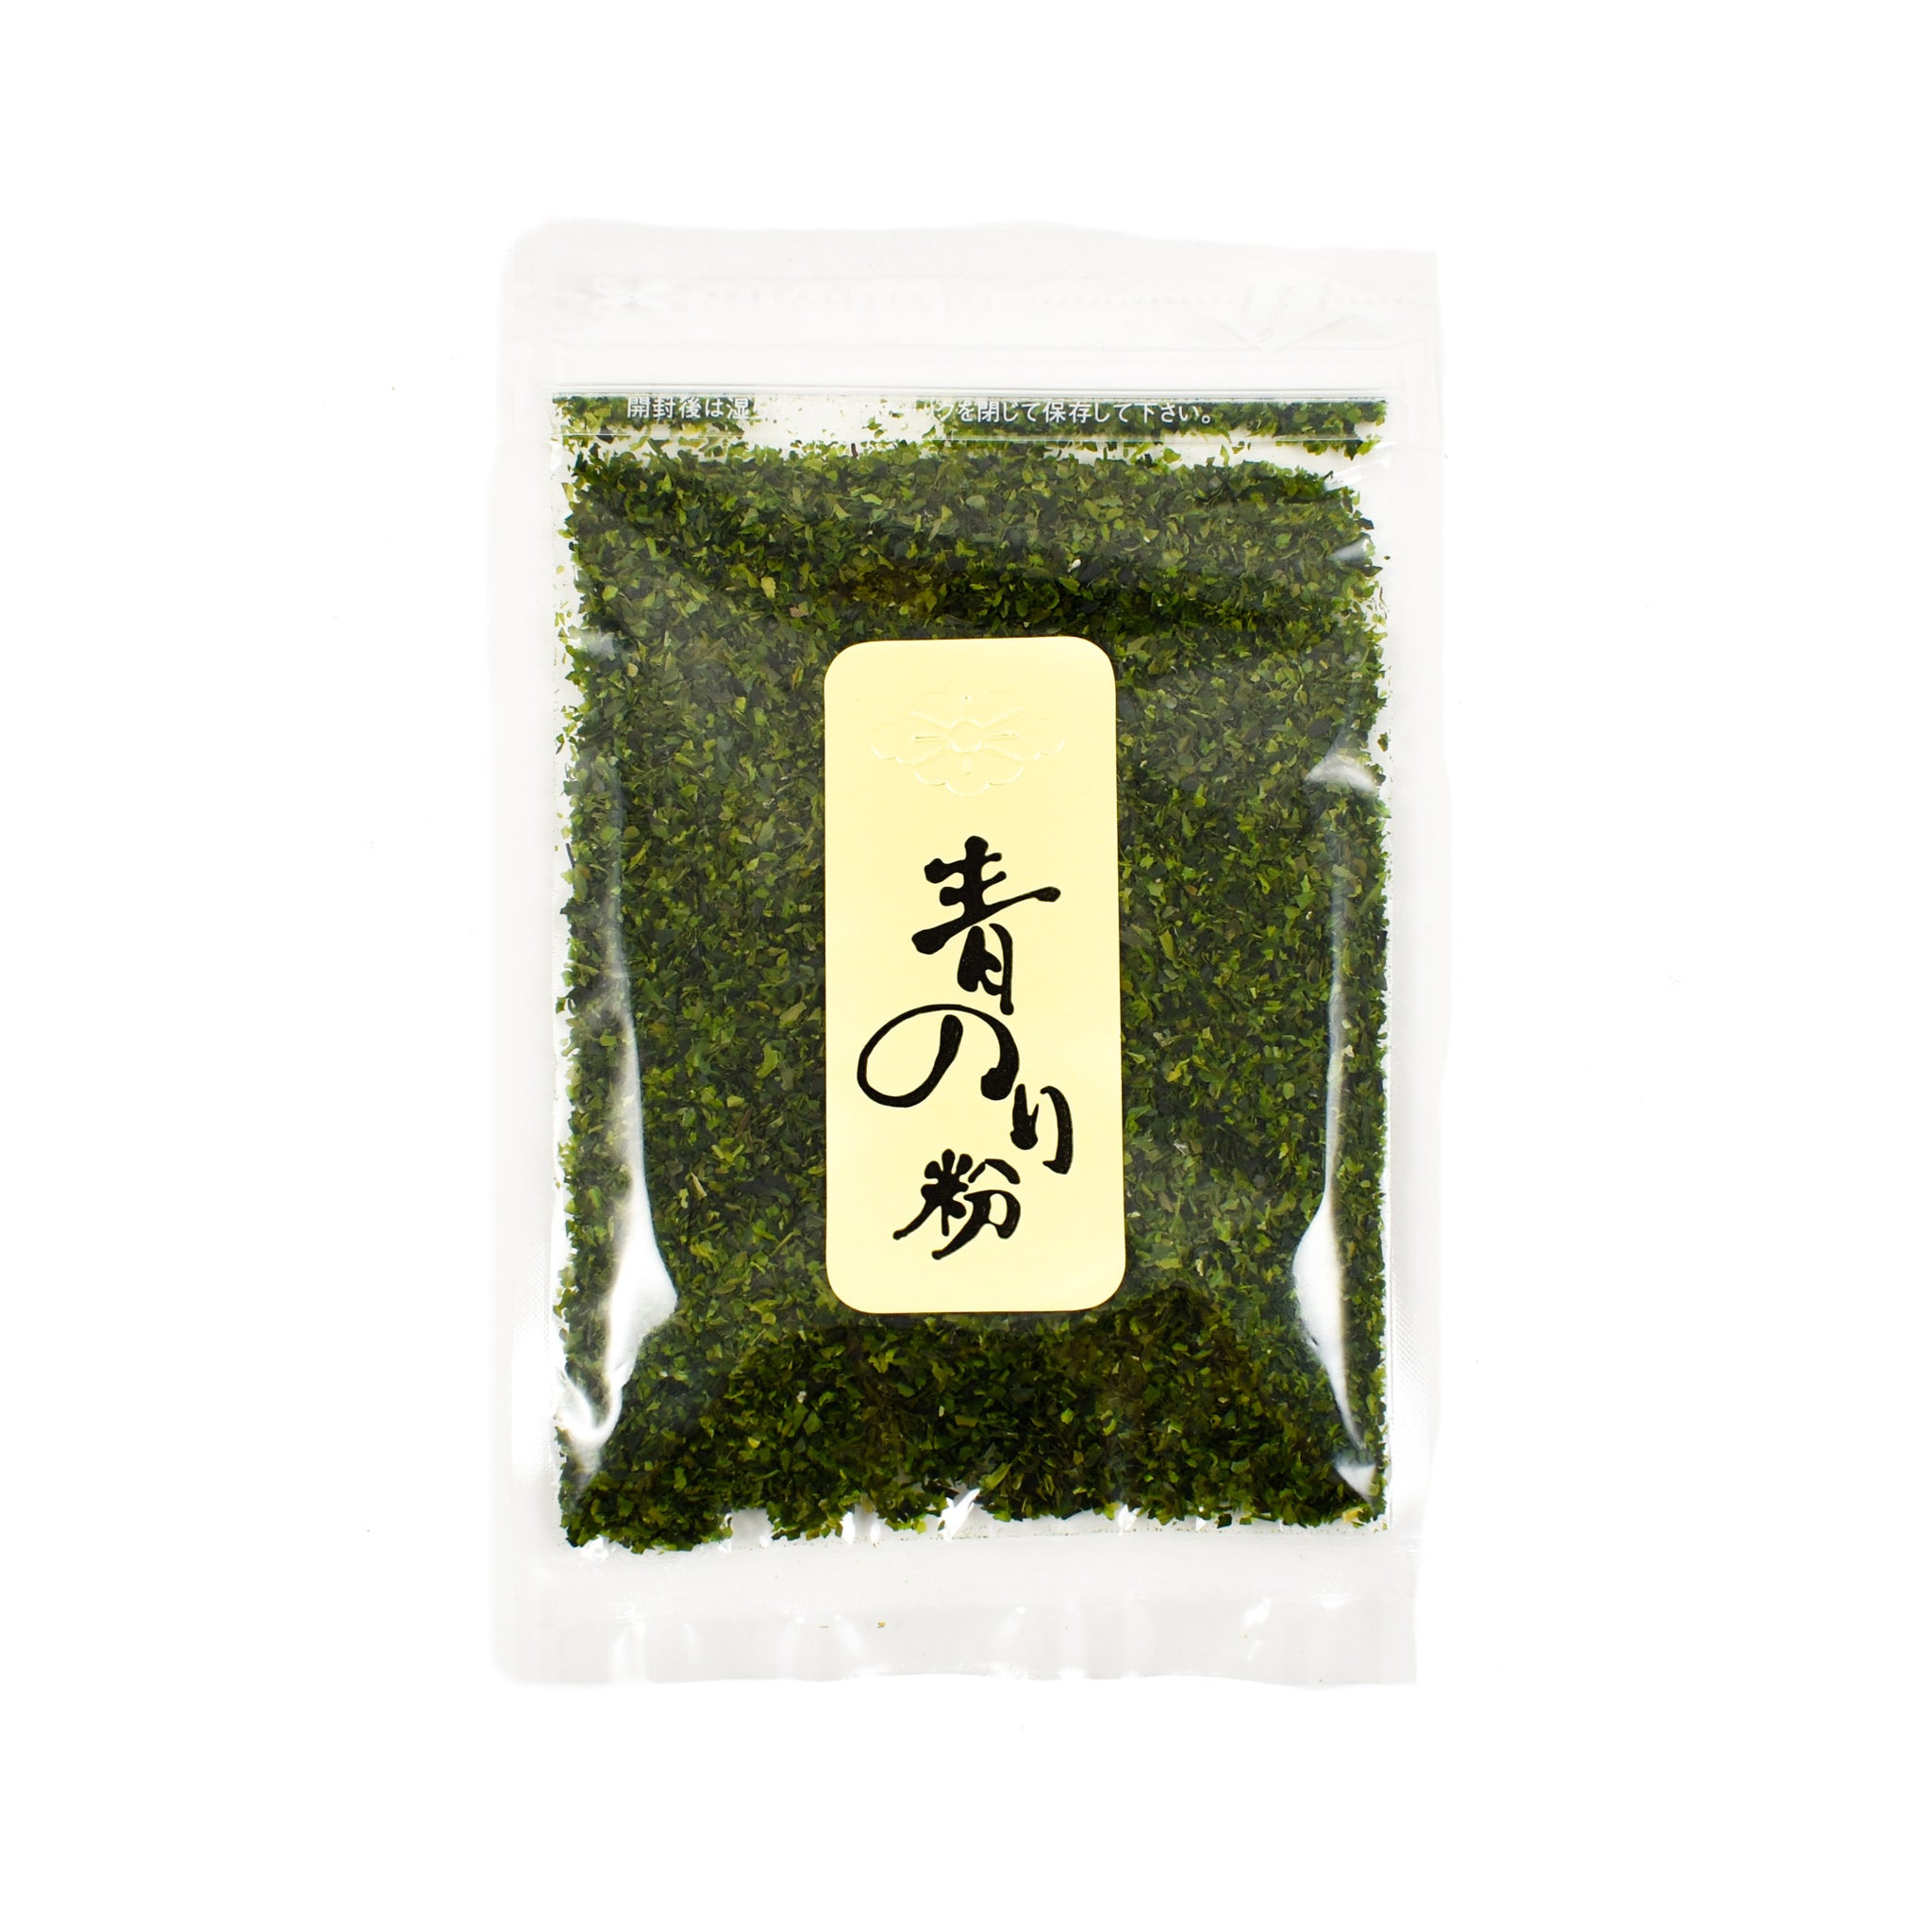 Hanabishi Aonori Seaweed Flakes 20g Ingredients Seaweed Squid Ink Fish Chinese Food